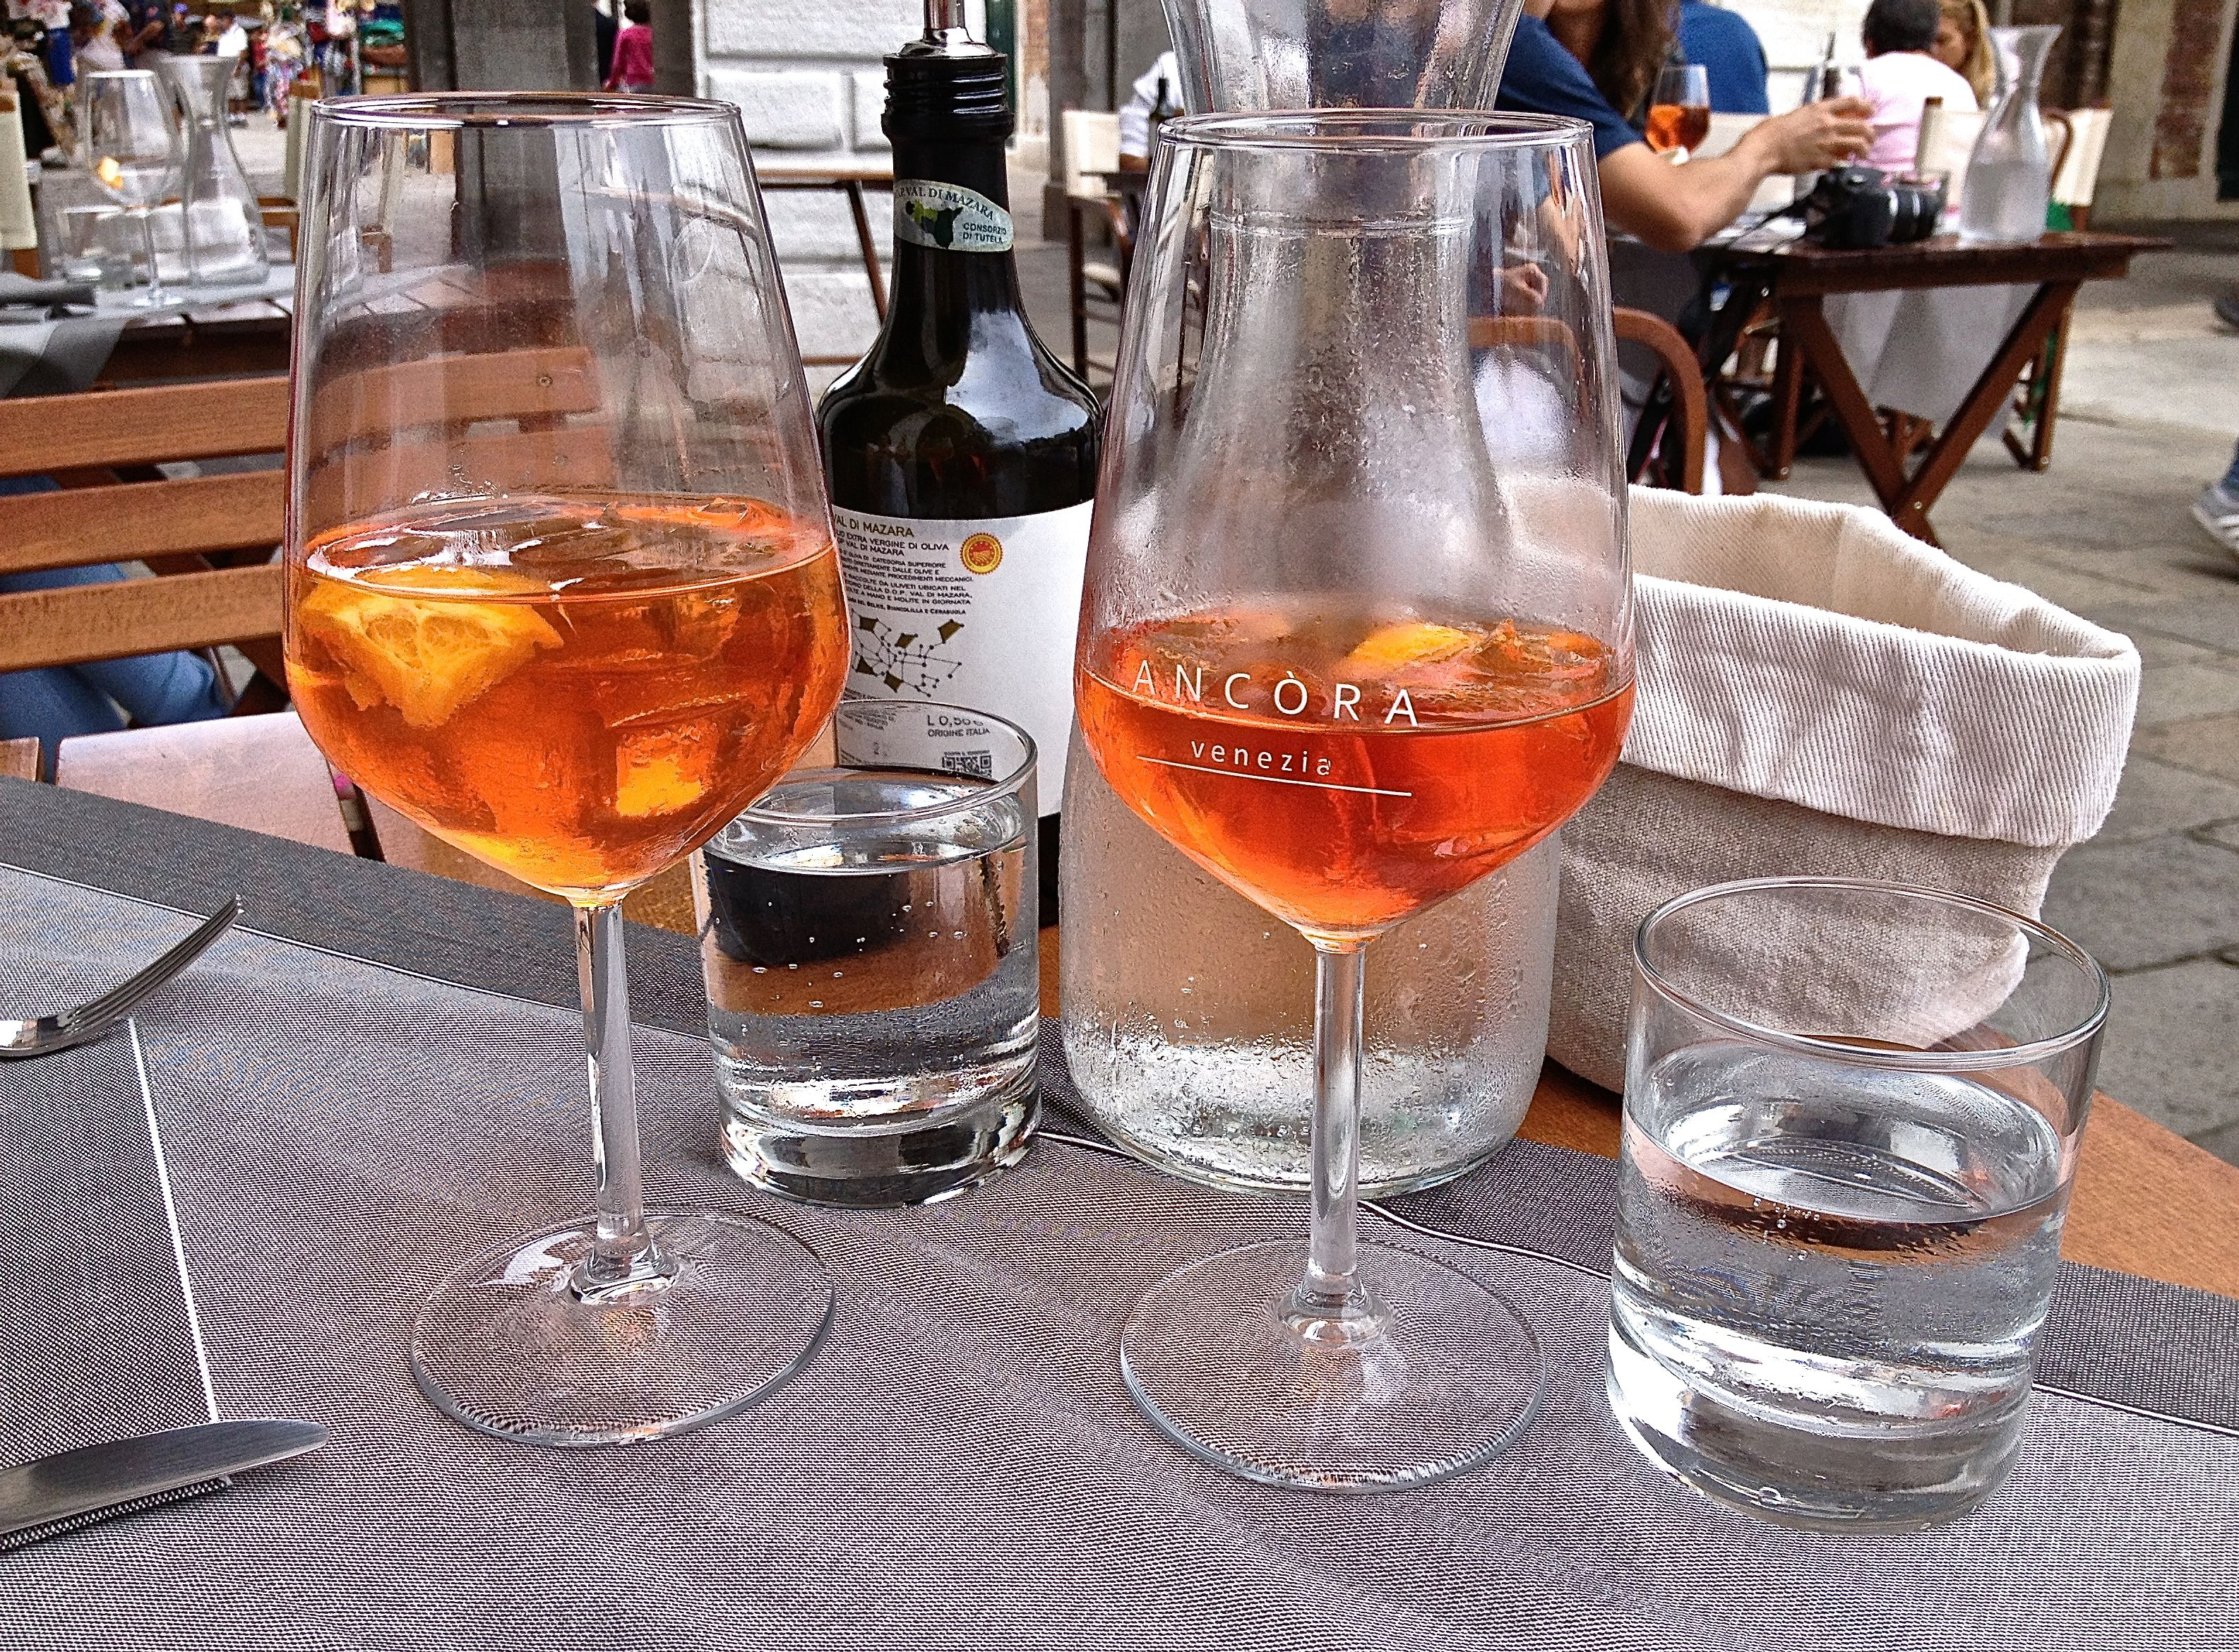 Photo of two Aperol spritz aperitifs in Venice